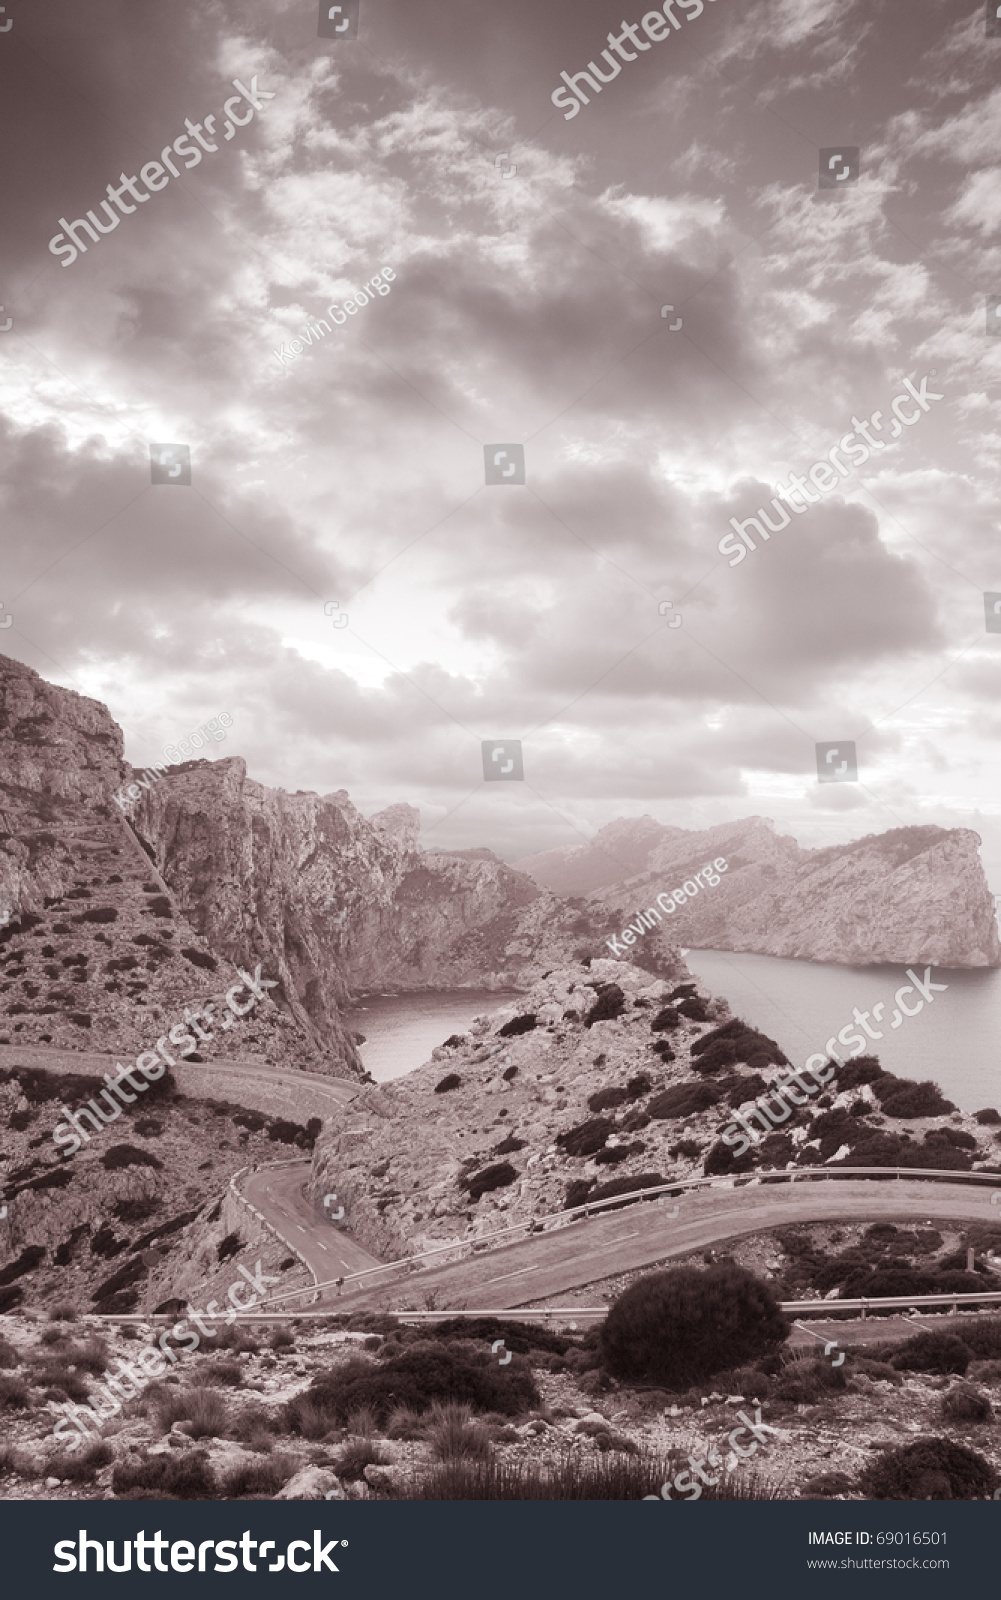 formentor in mallorca spain in black and white sepia tone stock photo 69016501 shutterstock. Black Bedroom Furniture Sets. Home Design Ideas